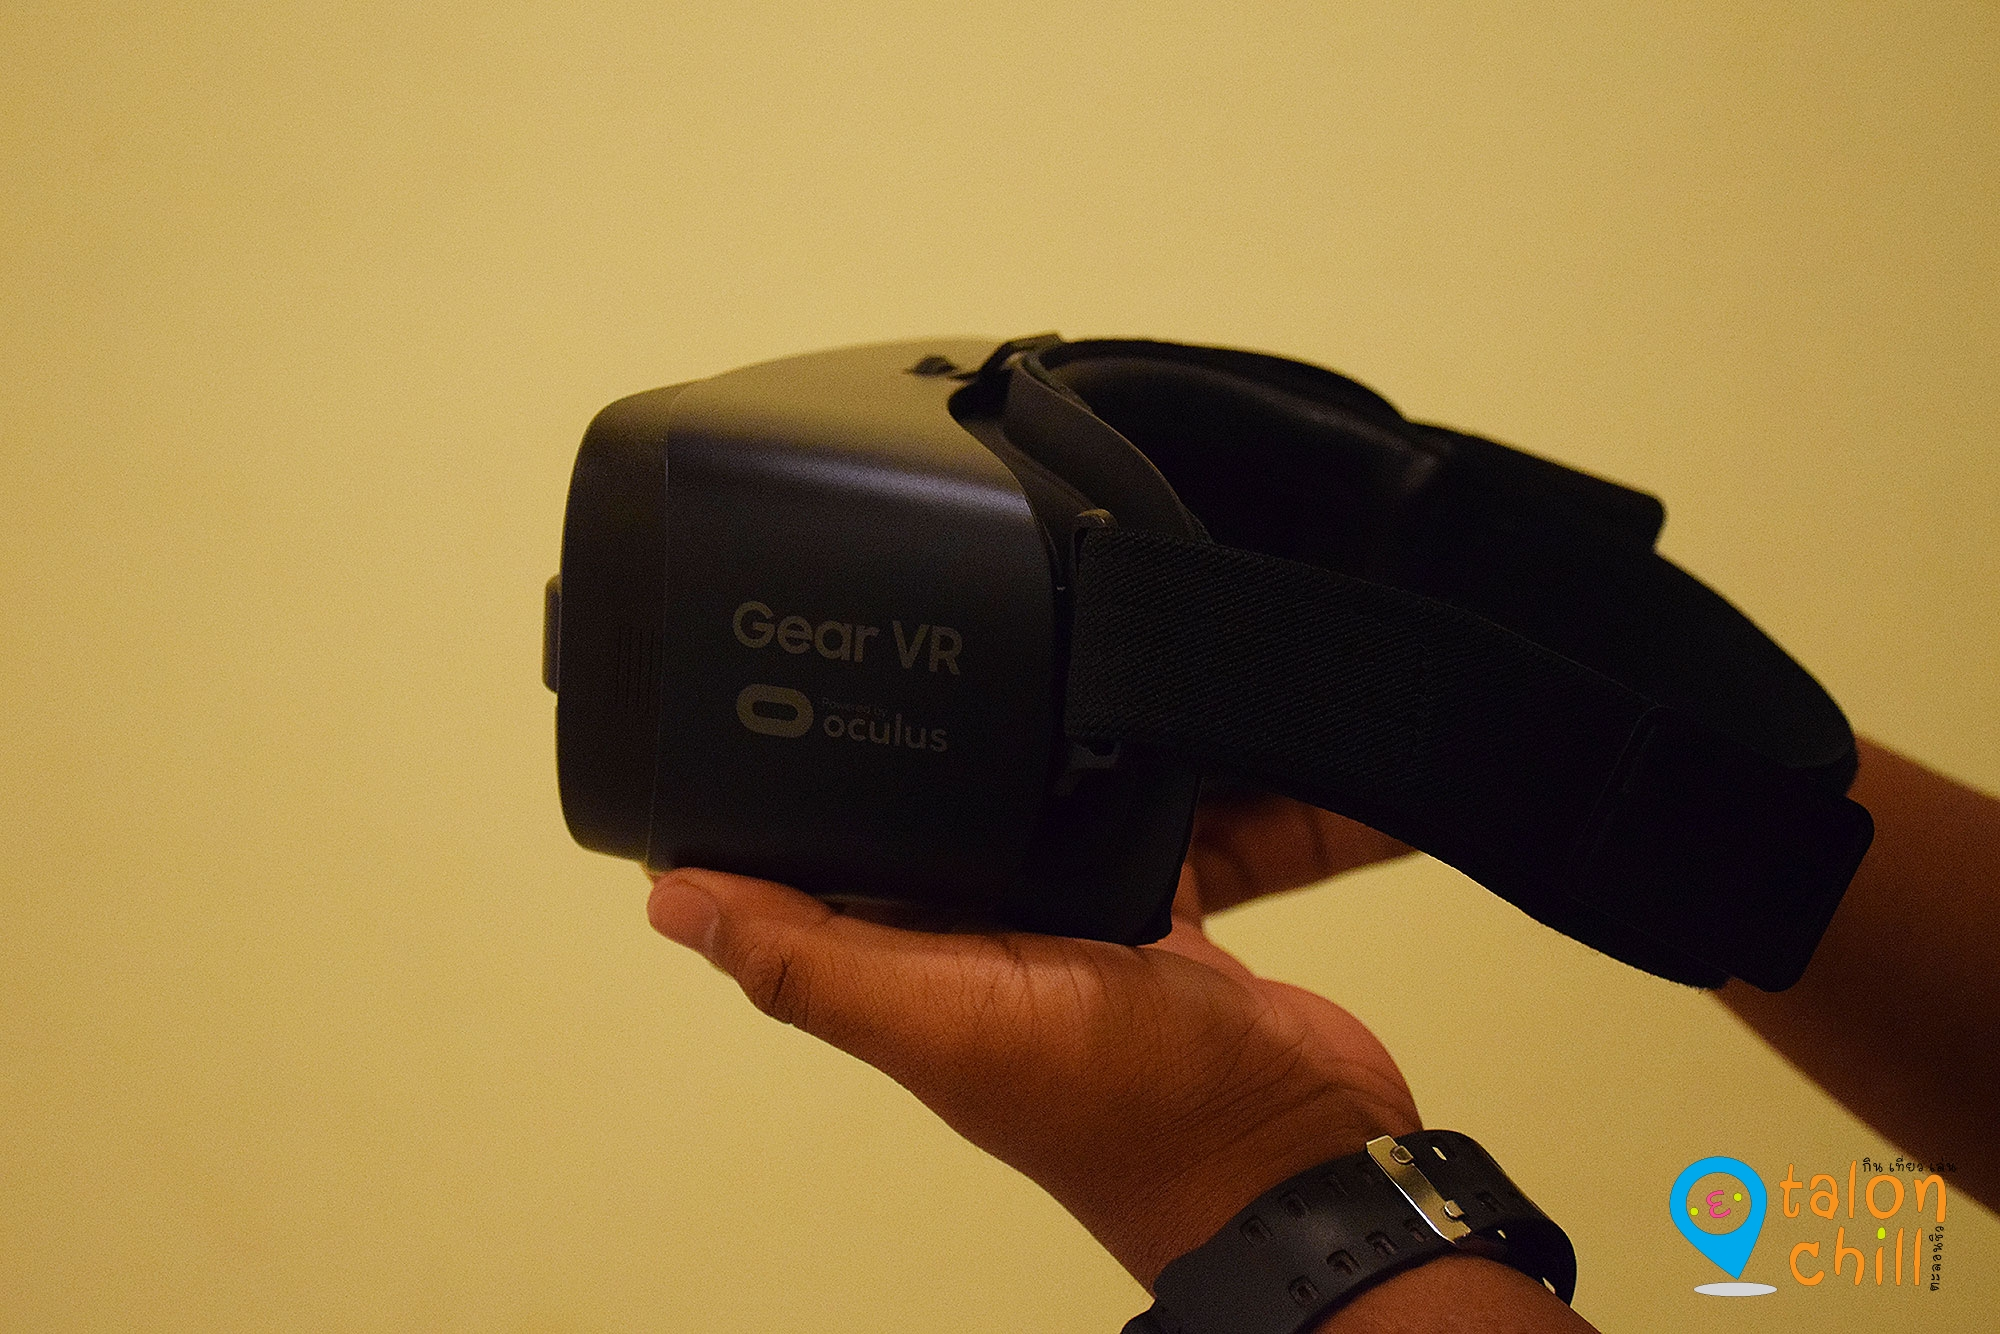 review samsung gear vr by oculus ouija 2 360 vr 30